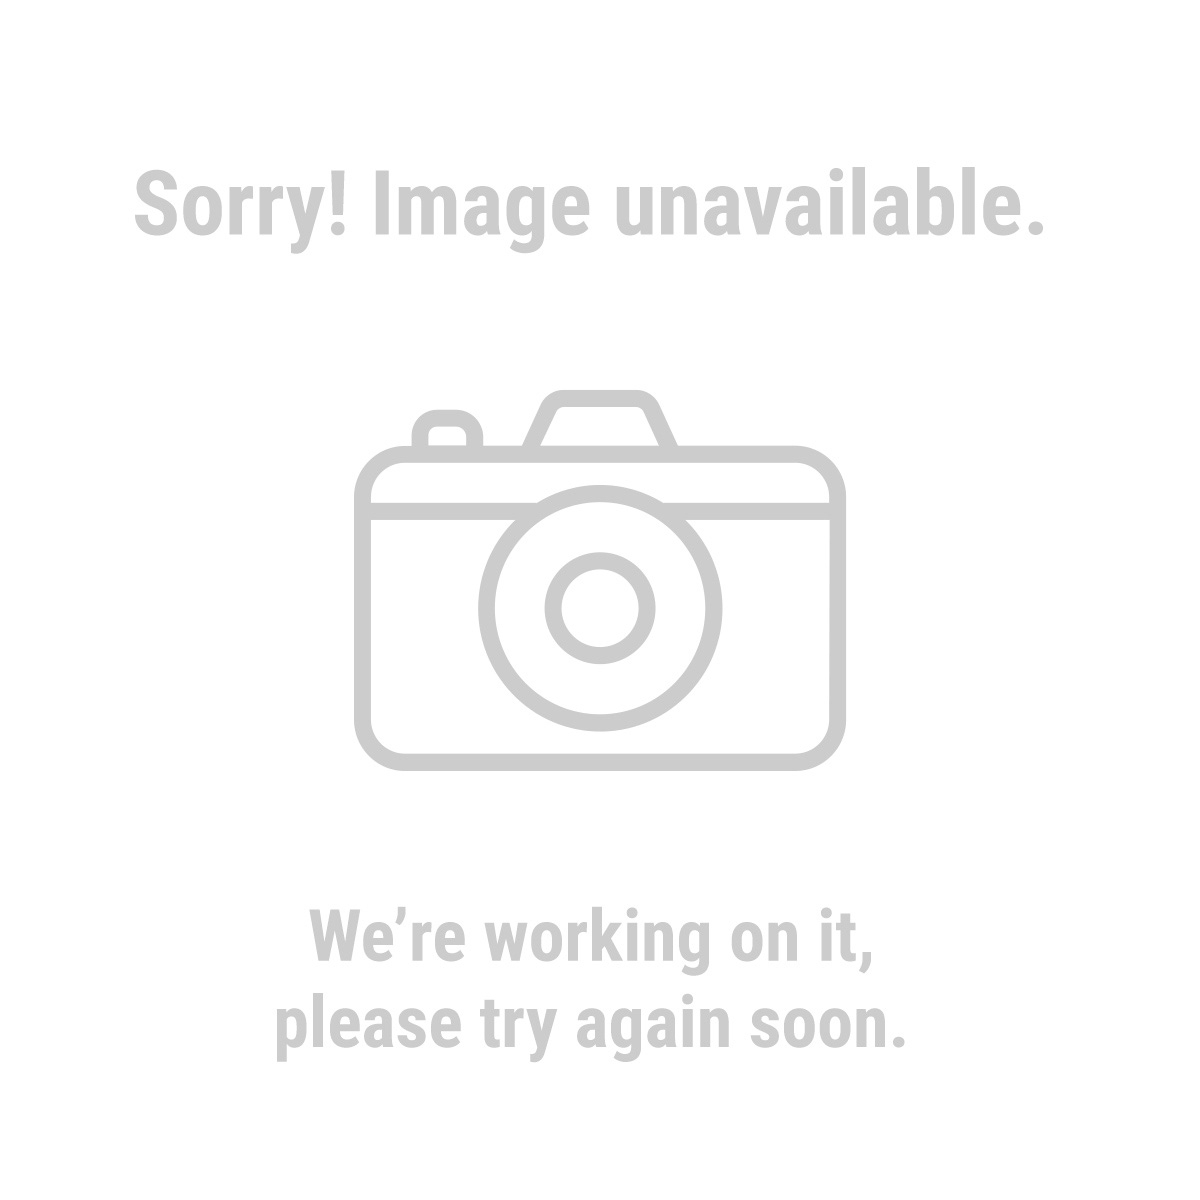 180 Amp MIG/Flux Wire Feed Welder - 24 volts @ 140 amps